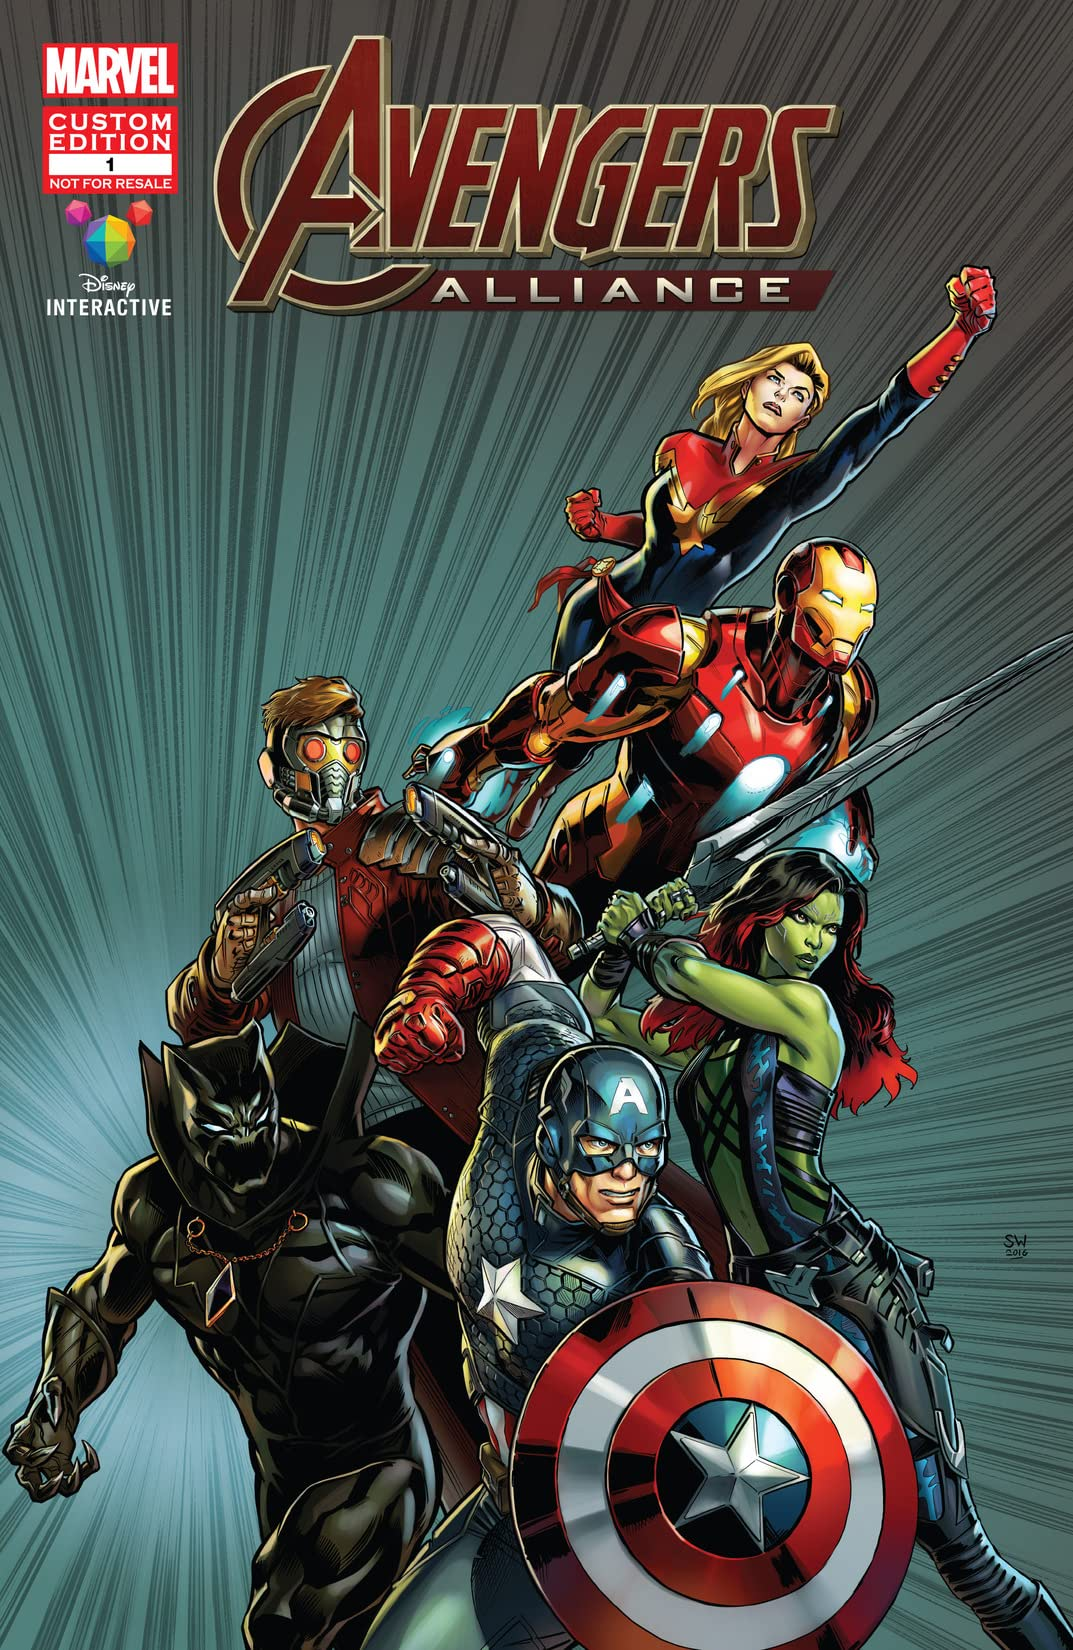 marvel avengers alliance 2016 1 - Avengers Marvel